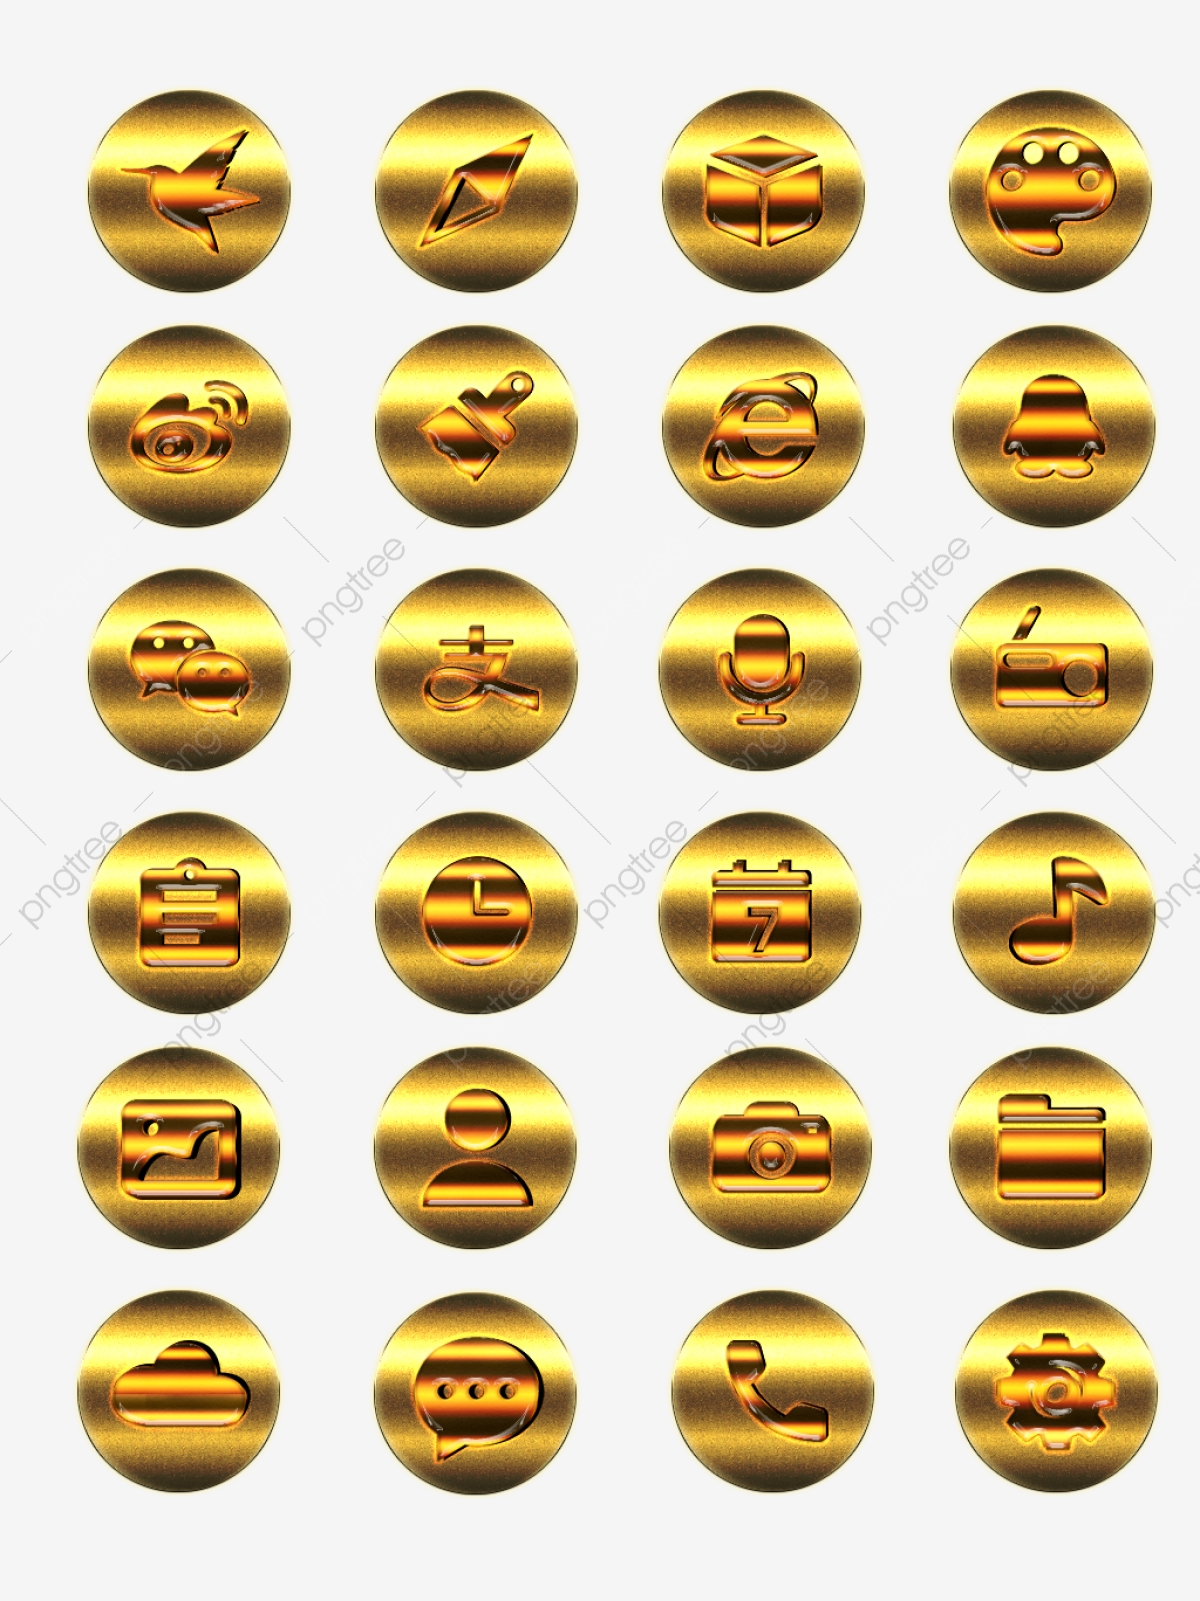 Element Tyrants Gold Mobile App Theme Icon, Gold, Mobile Phone